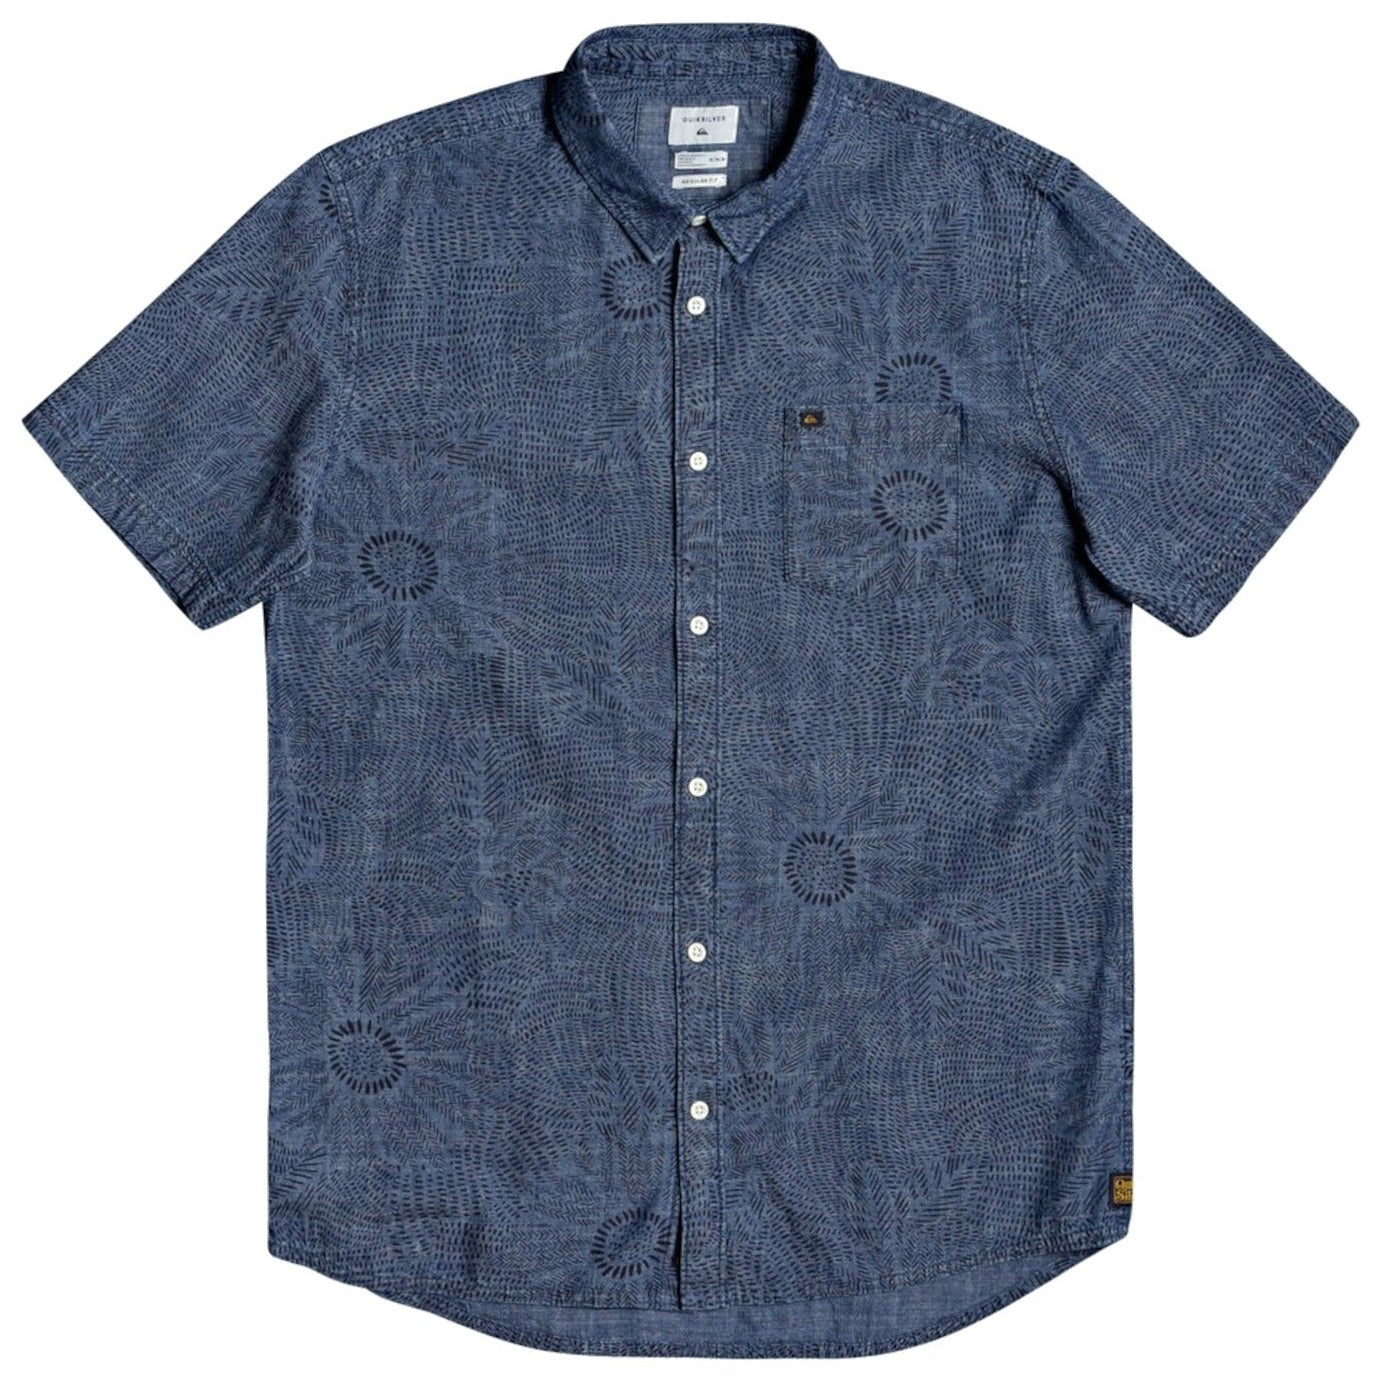 Quiksilver Wildflower Men's S/S Shirt